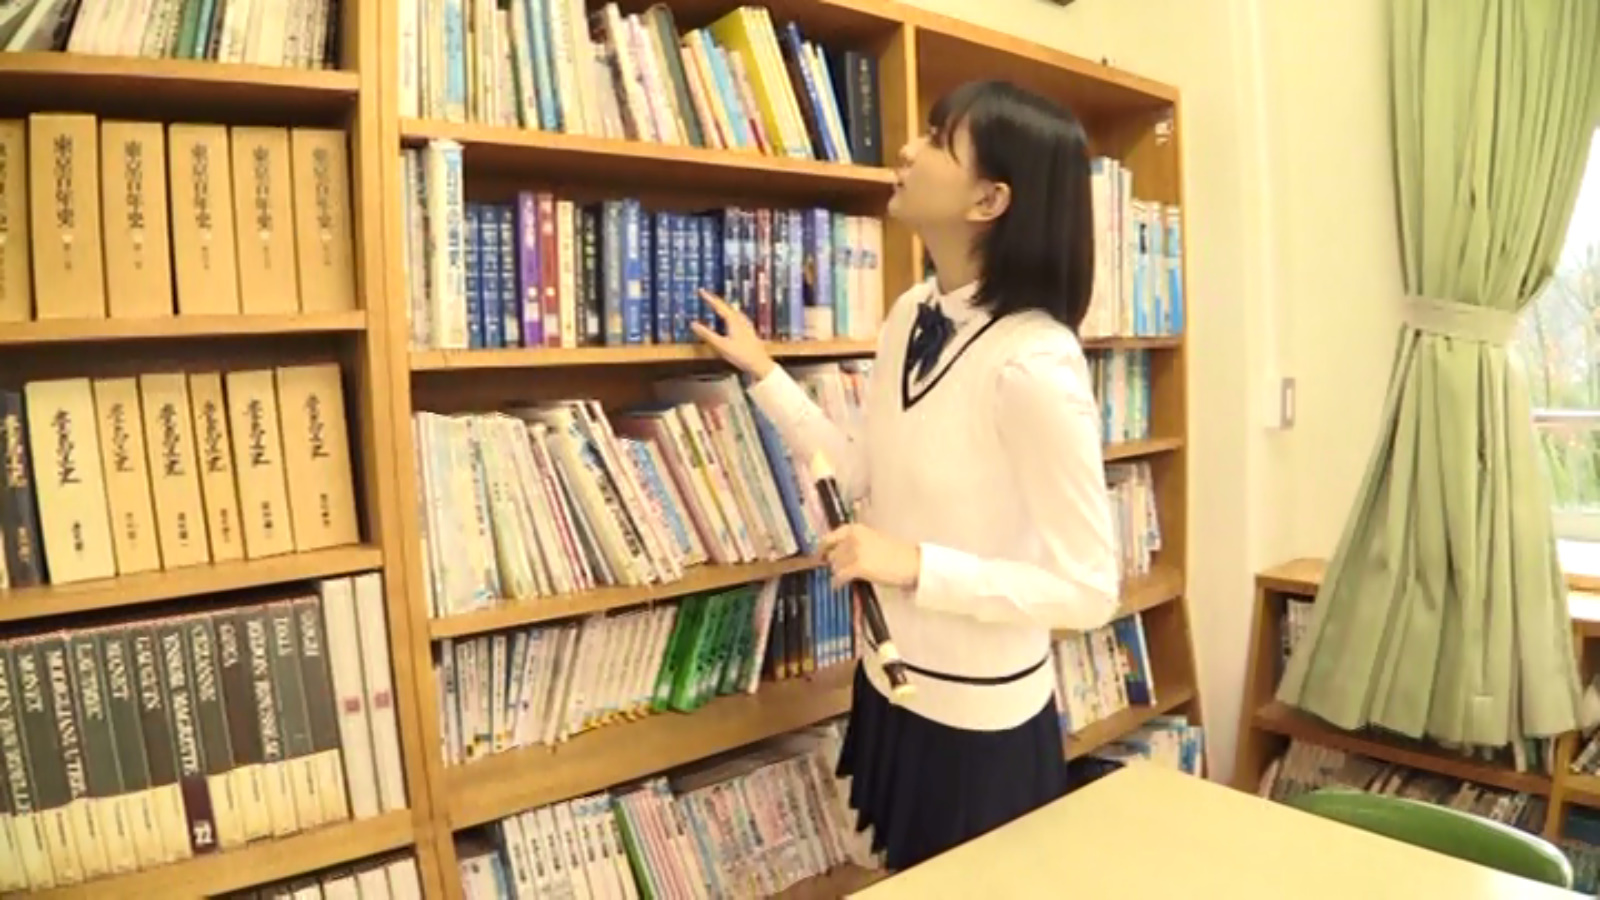 Every secret in the library098